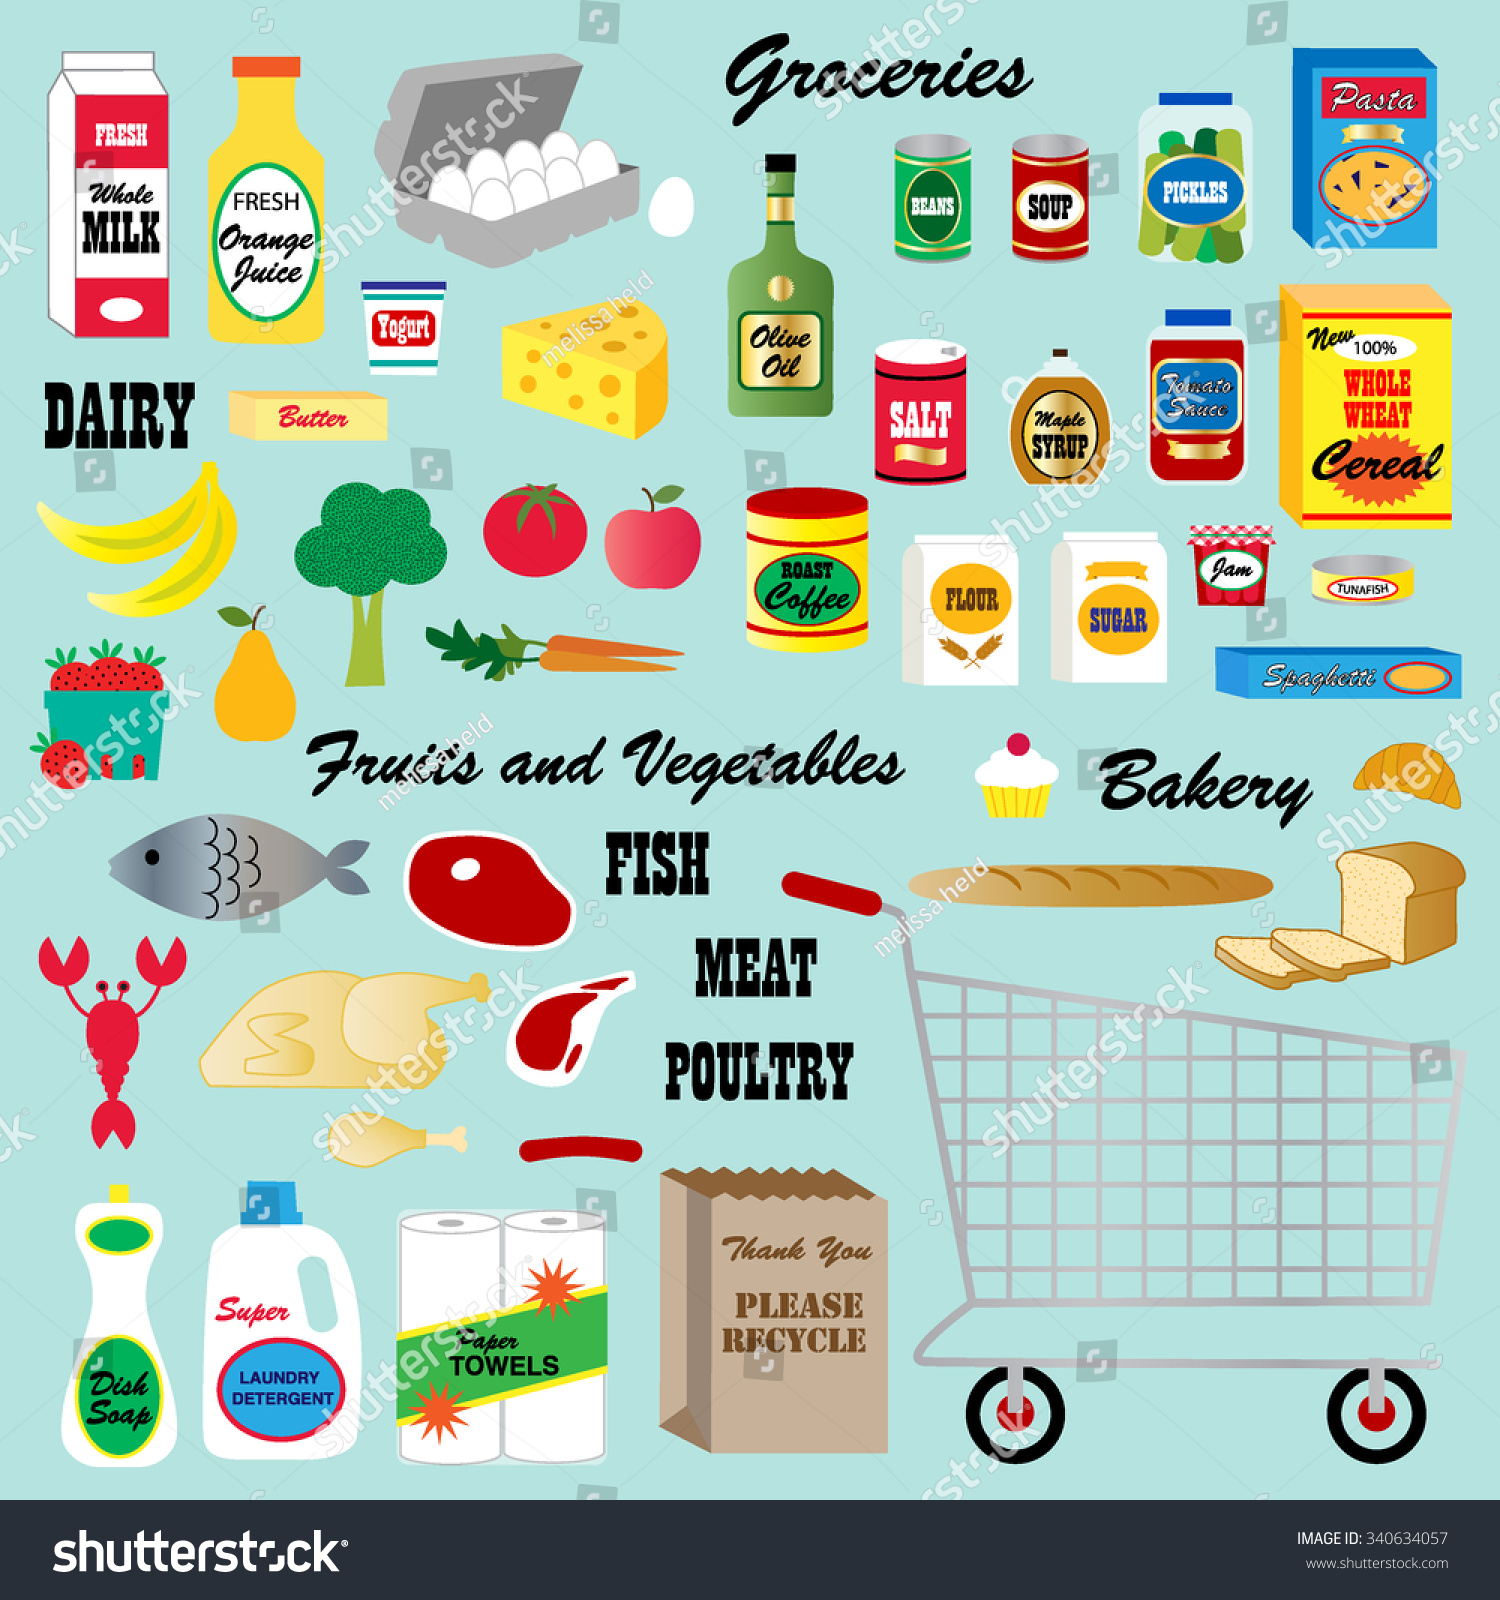 Grocery Store Clipart Stock Vector Royalty Free 340634057